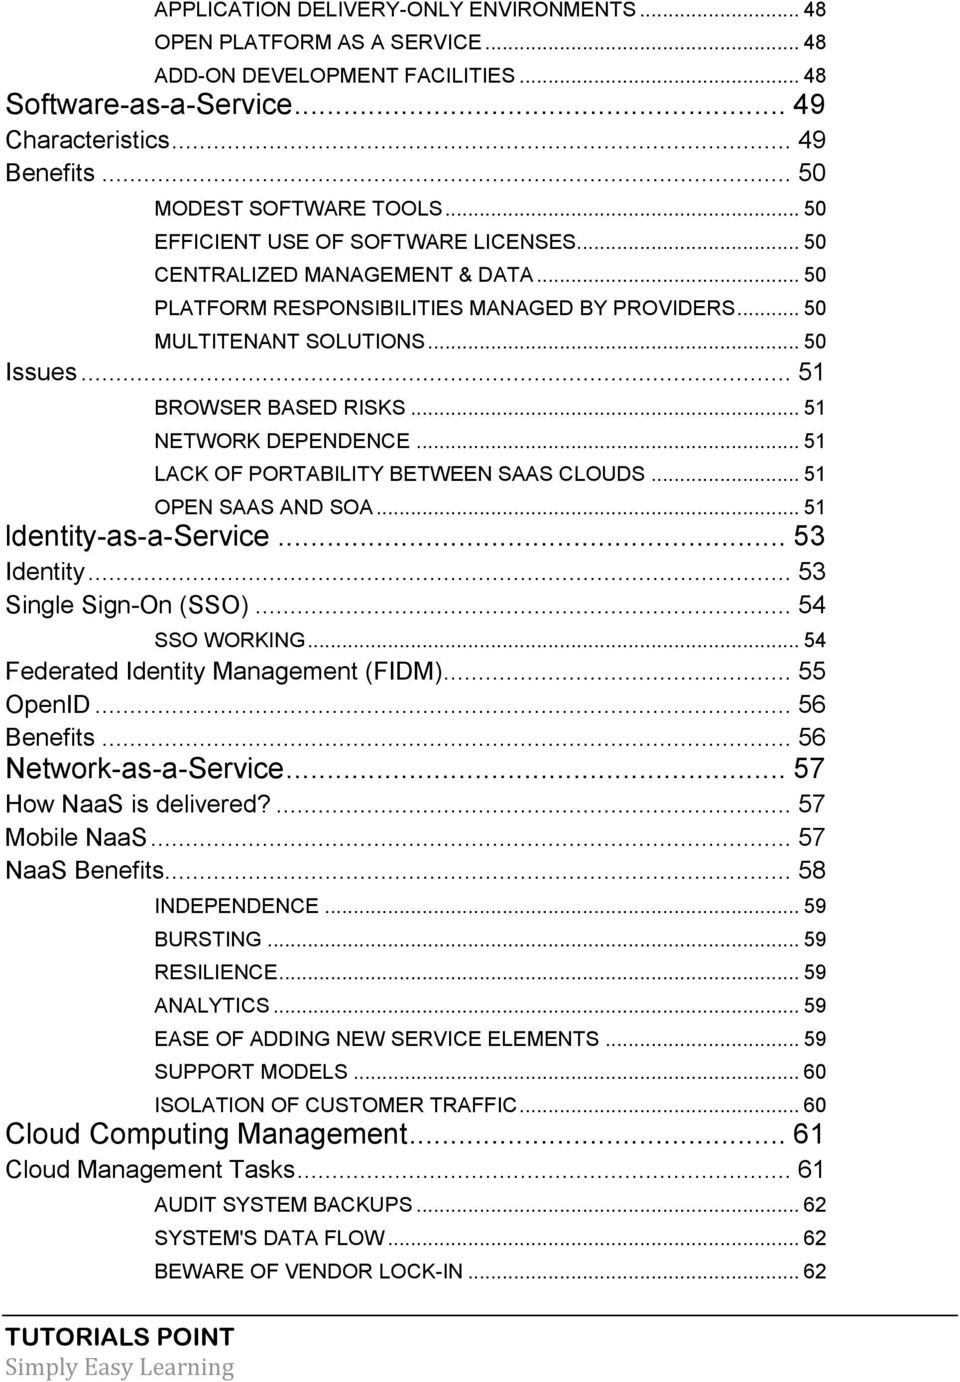 .. 51 NETWORK DEPENDENCE... 51 LACK OF PORTABILITY BETWEEN SAAS CLOUDS... 51 OPEN SAAS AND SOA... 51 ldentity-as-a-service... 53 Identity... 53 Single Sign-On (SSO)... 54 SSO WORKING.